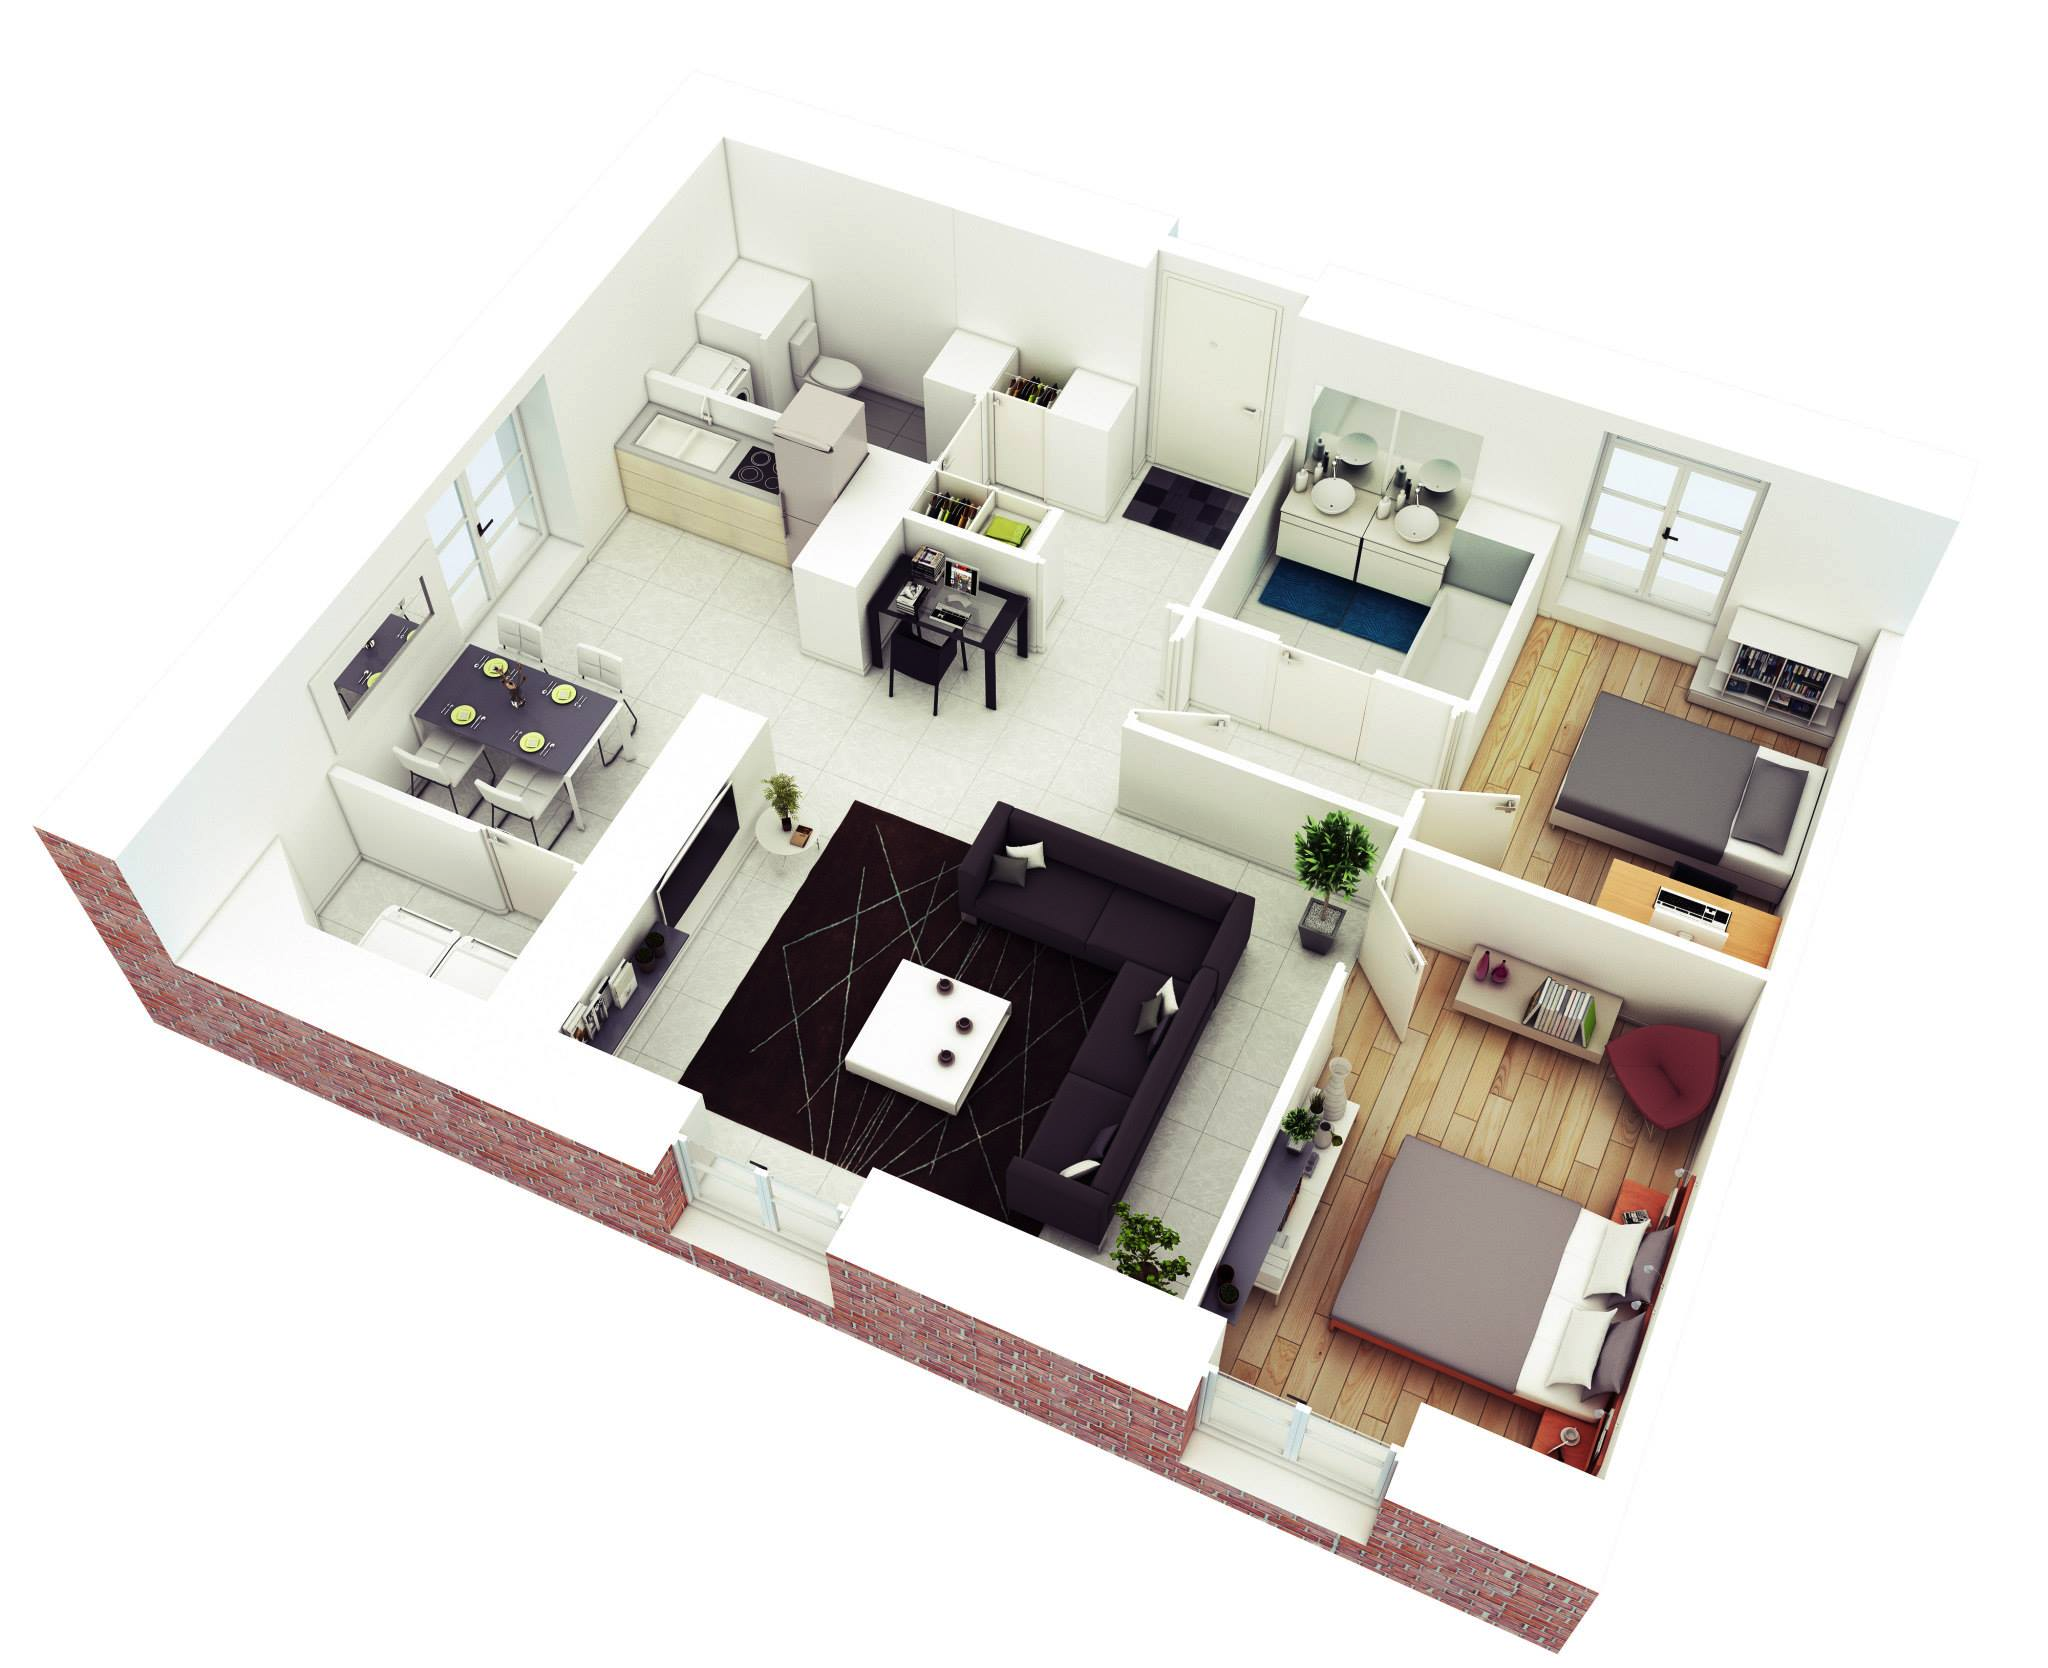 25 more 2 bedroom 3d floor plans For3d Bedroom Plan